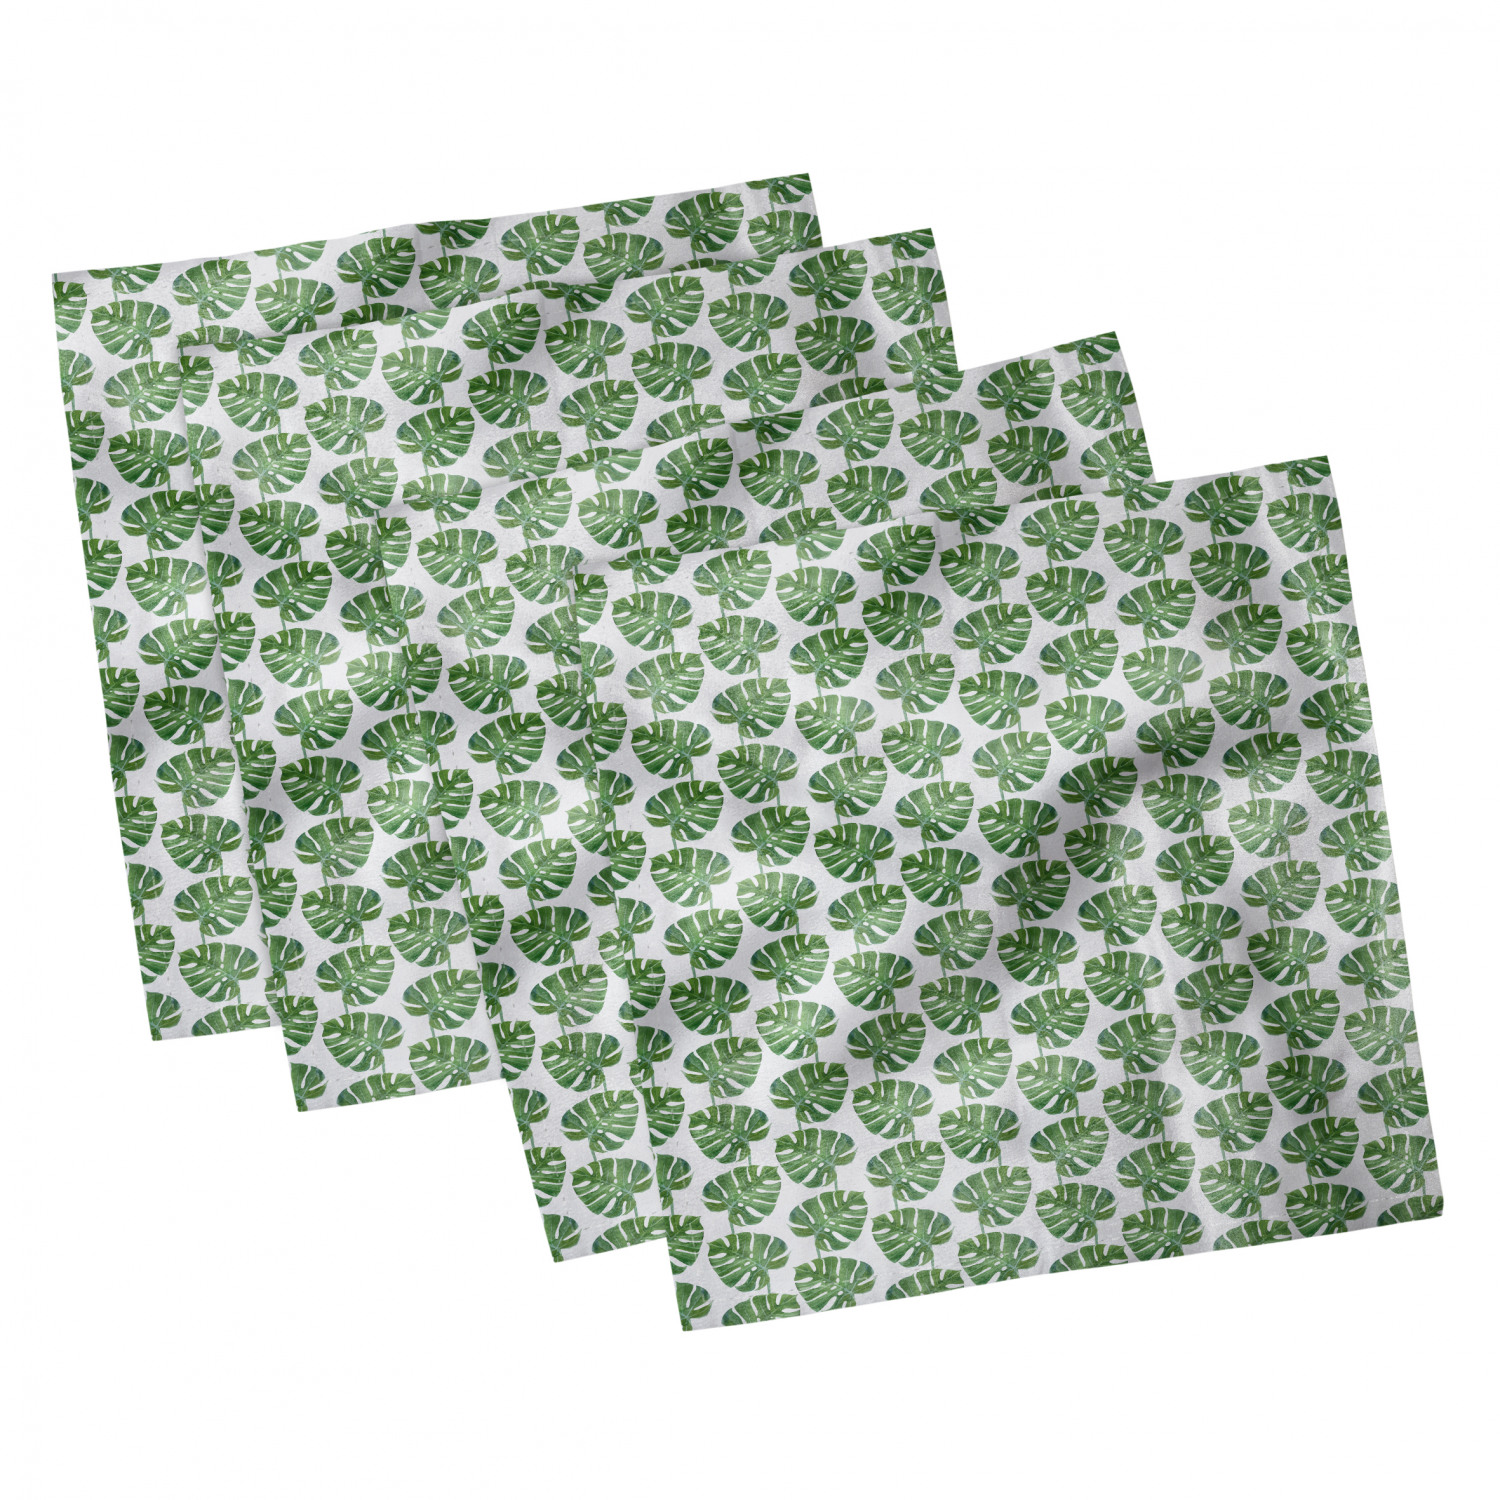 thumbnail 13 - Ambesonne-Leaves-Forest-Decorative-Satin-Napkins-Set-of-4-Party-Dinner-Fabric